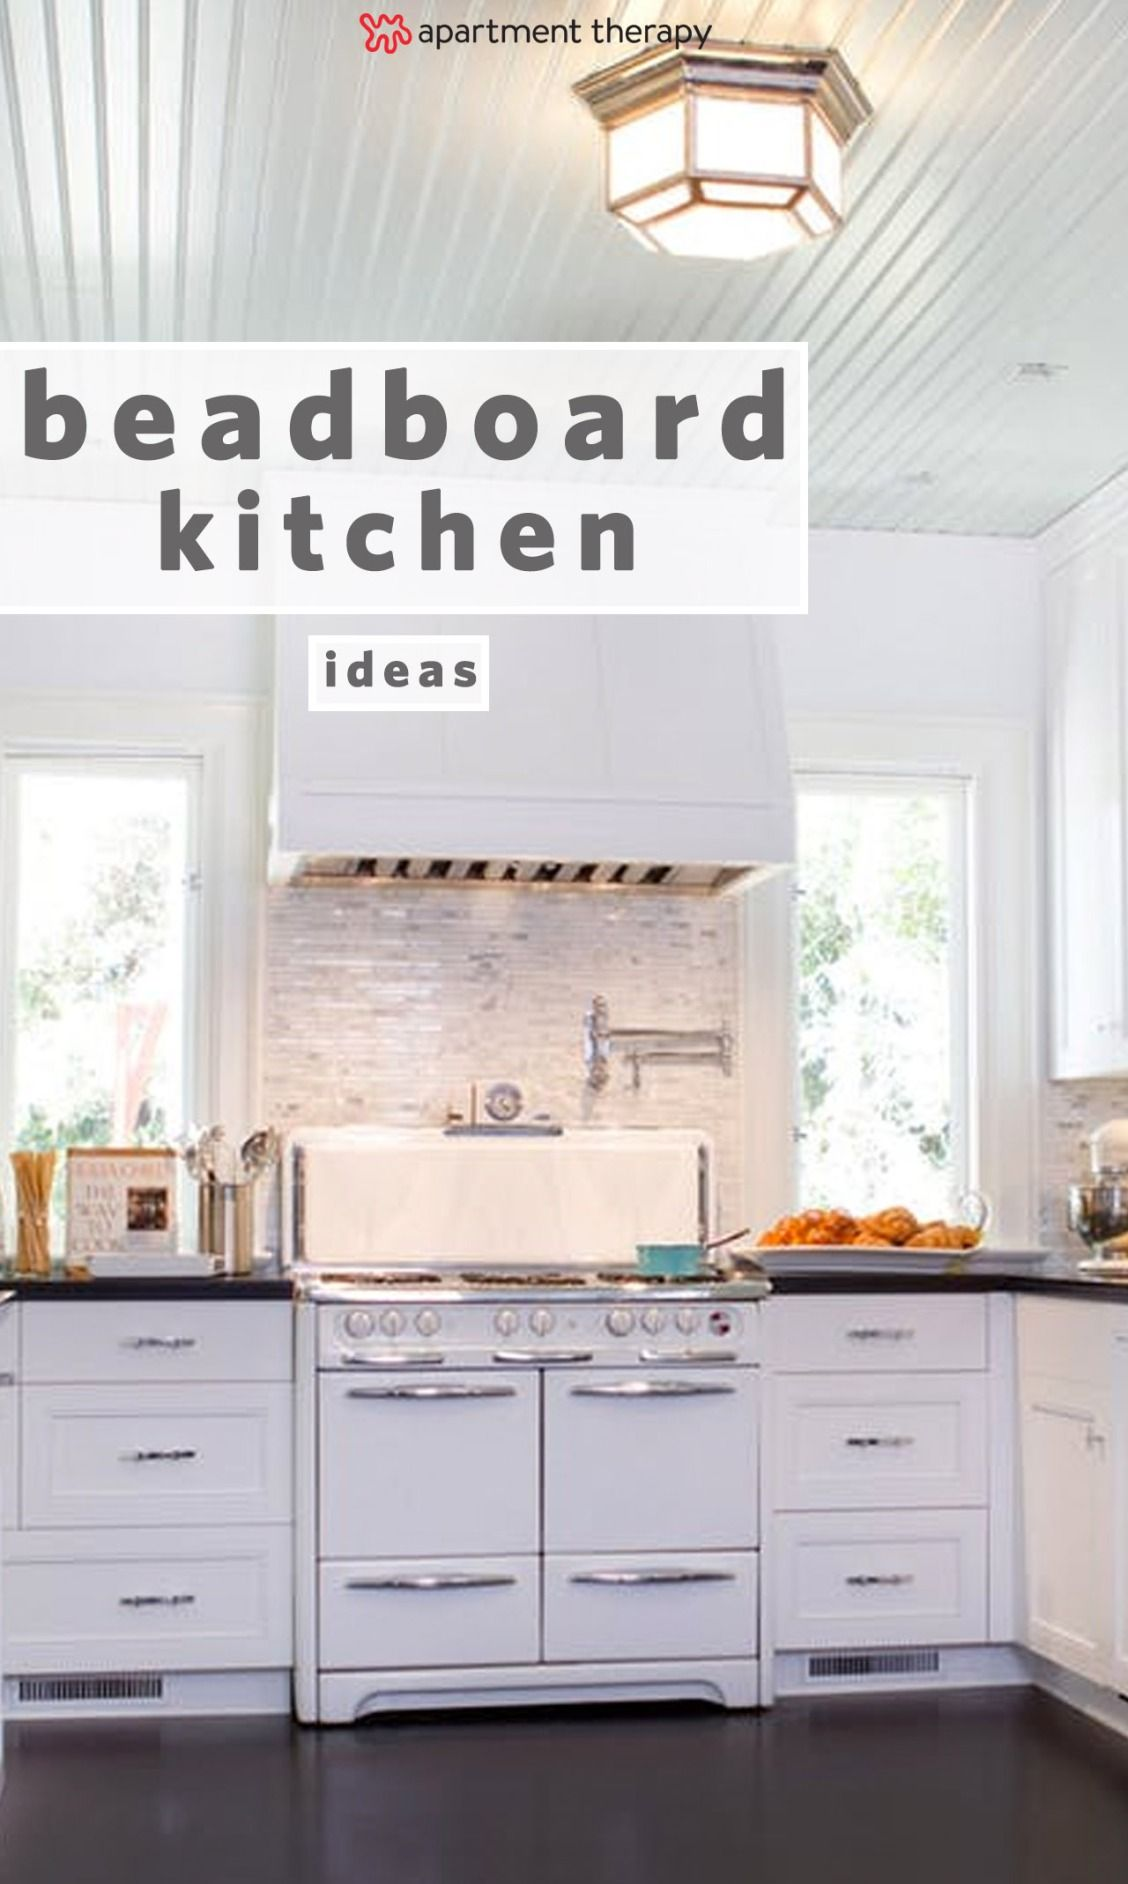 9 Creative Ideas For Using Beadboard All Around Your Home ...